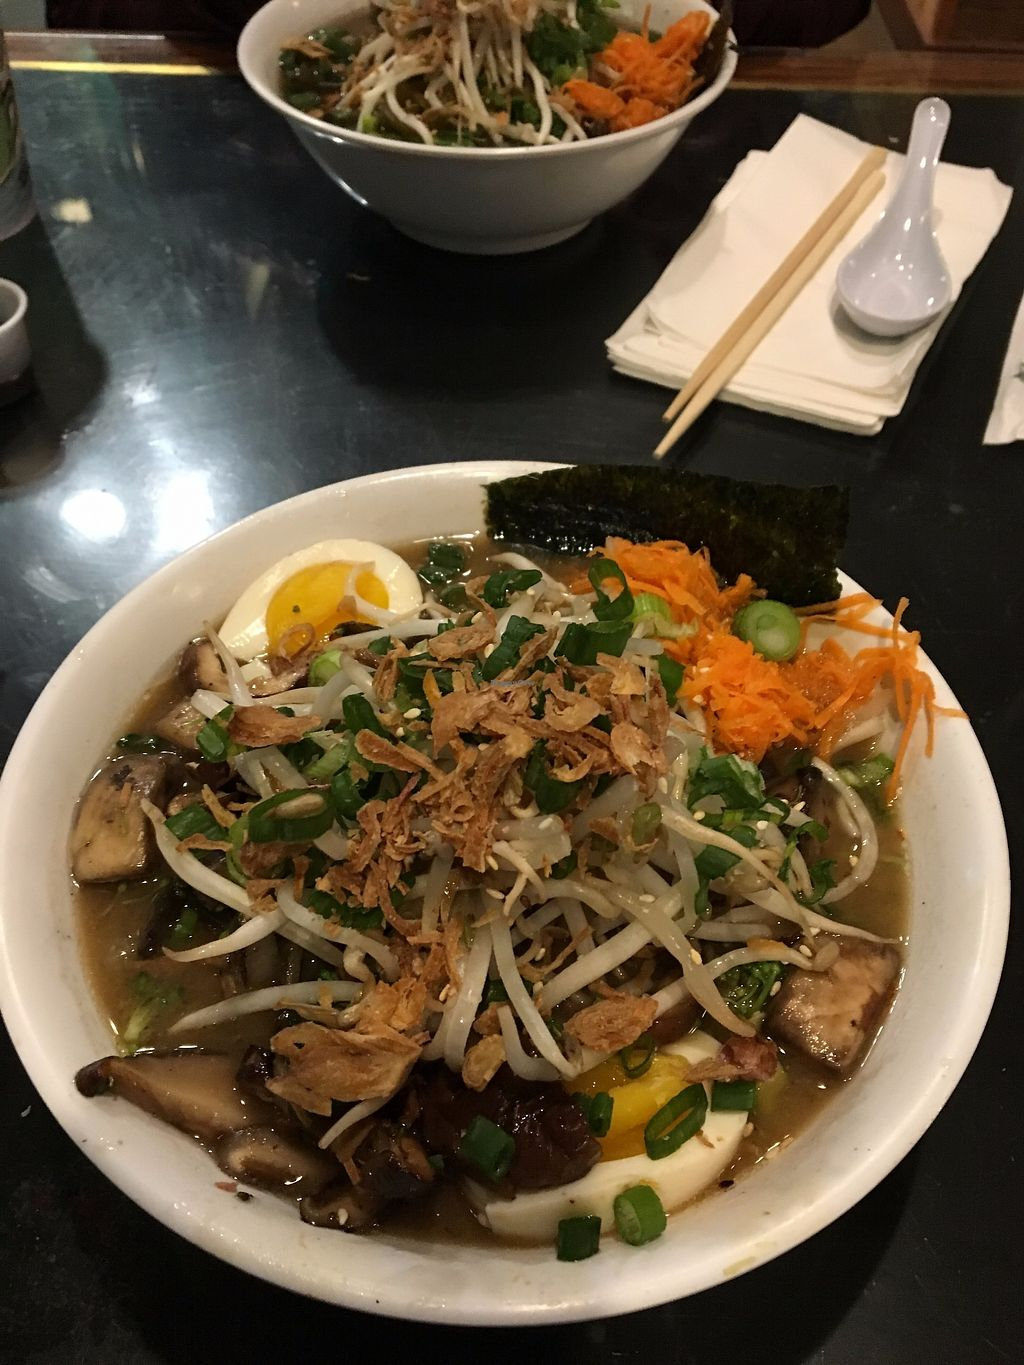 """Photo of Umami Noodle Bar  by <a href=""""/members/profile/sophiefrenchfry"""">sophiefrenchfry</a> <br/>Ramen with vegan broth; you can choose a variety of toppings <br/> November 15, 2017  - <a href='/contact/abuse/image/52479/325949'>Report</a>"""